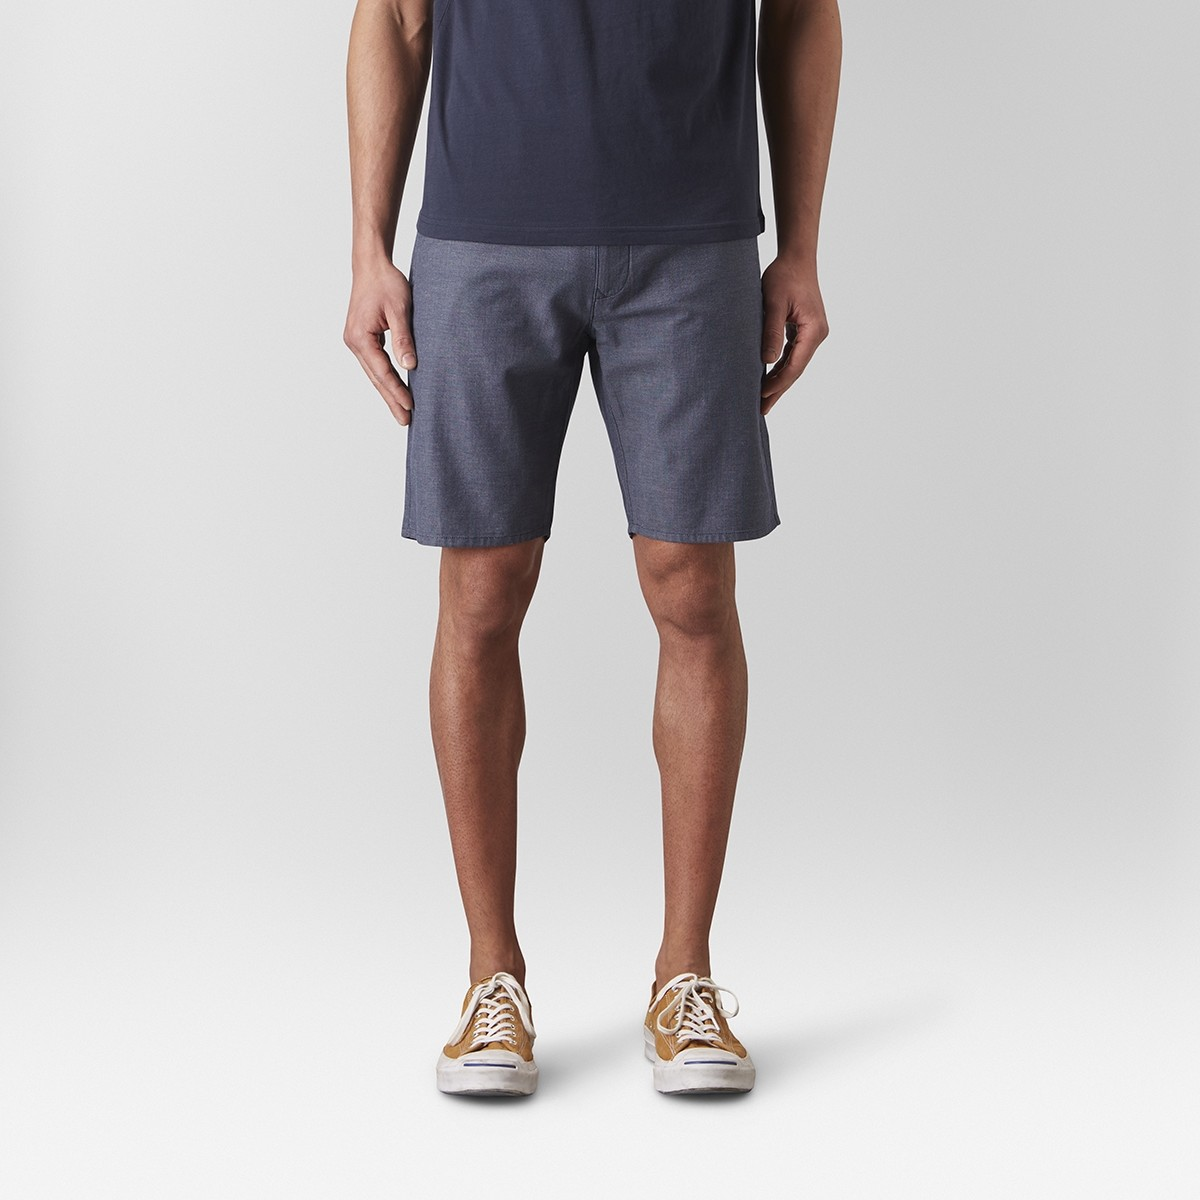 Bowery Chinos Short Mellanblå   East West   Brothers.se